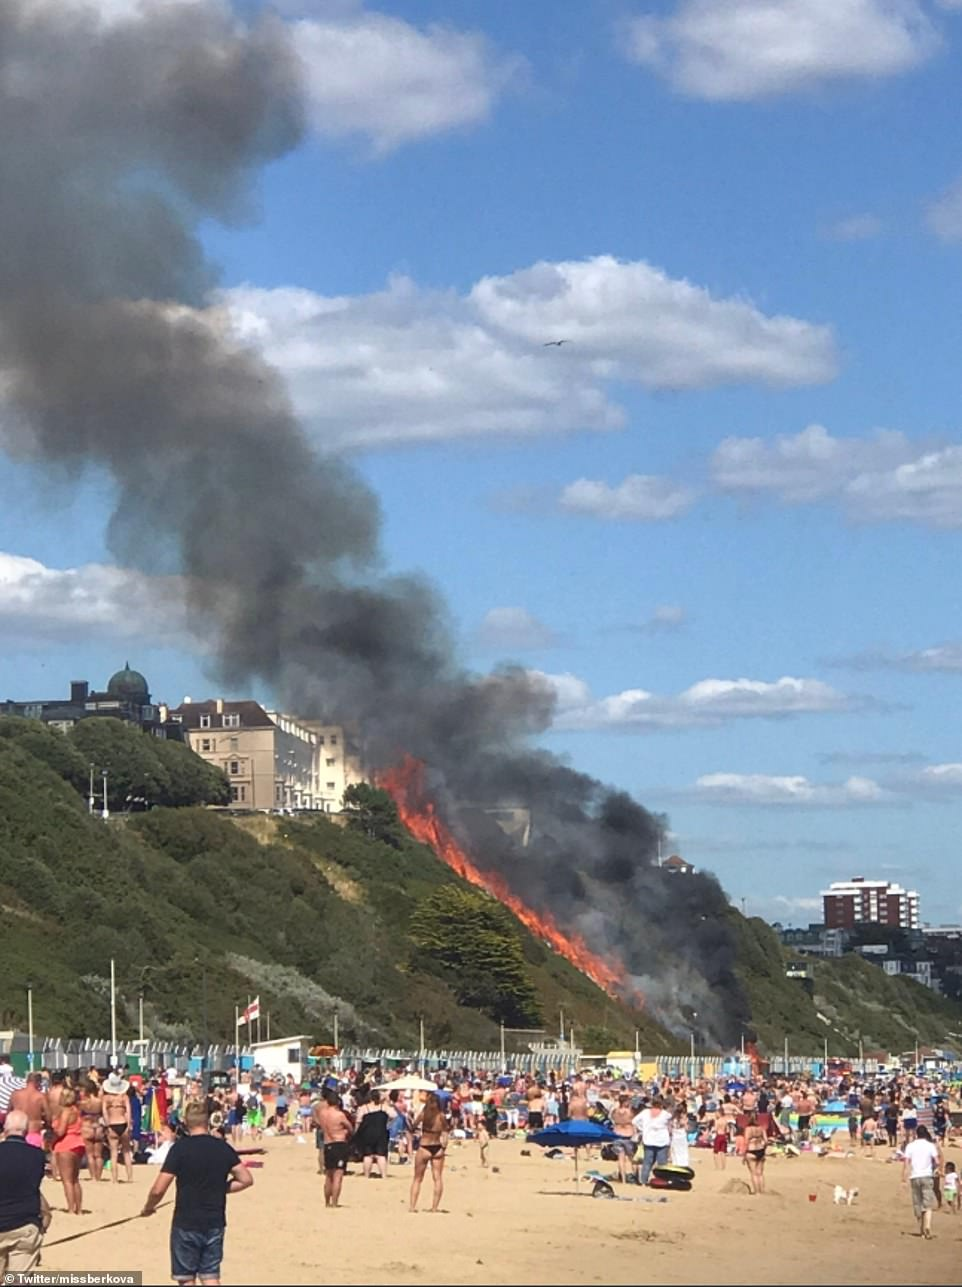 A huge fire has erupted on Bournemouth beach, where crowds of sun-seekers are enjoying the warm weathe